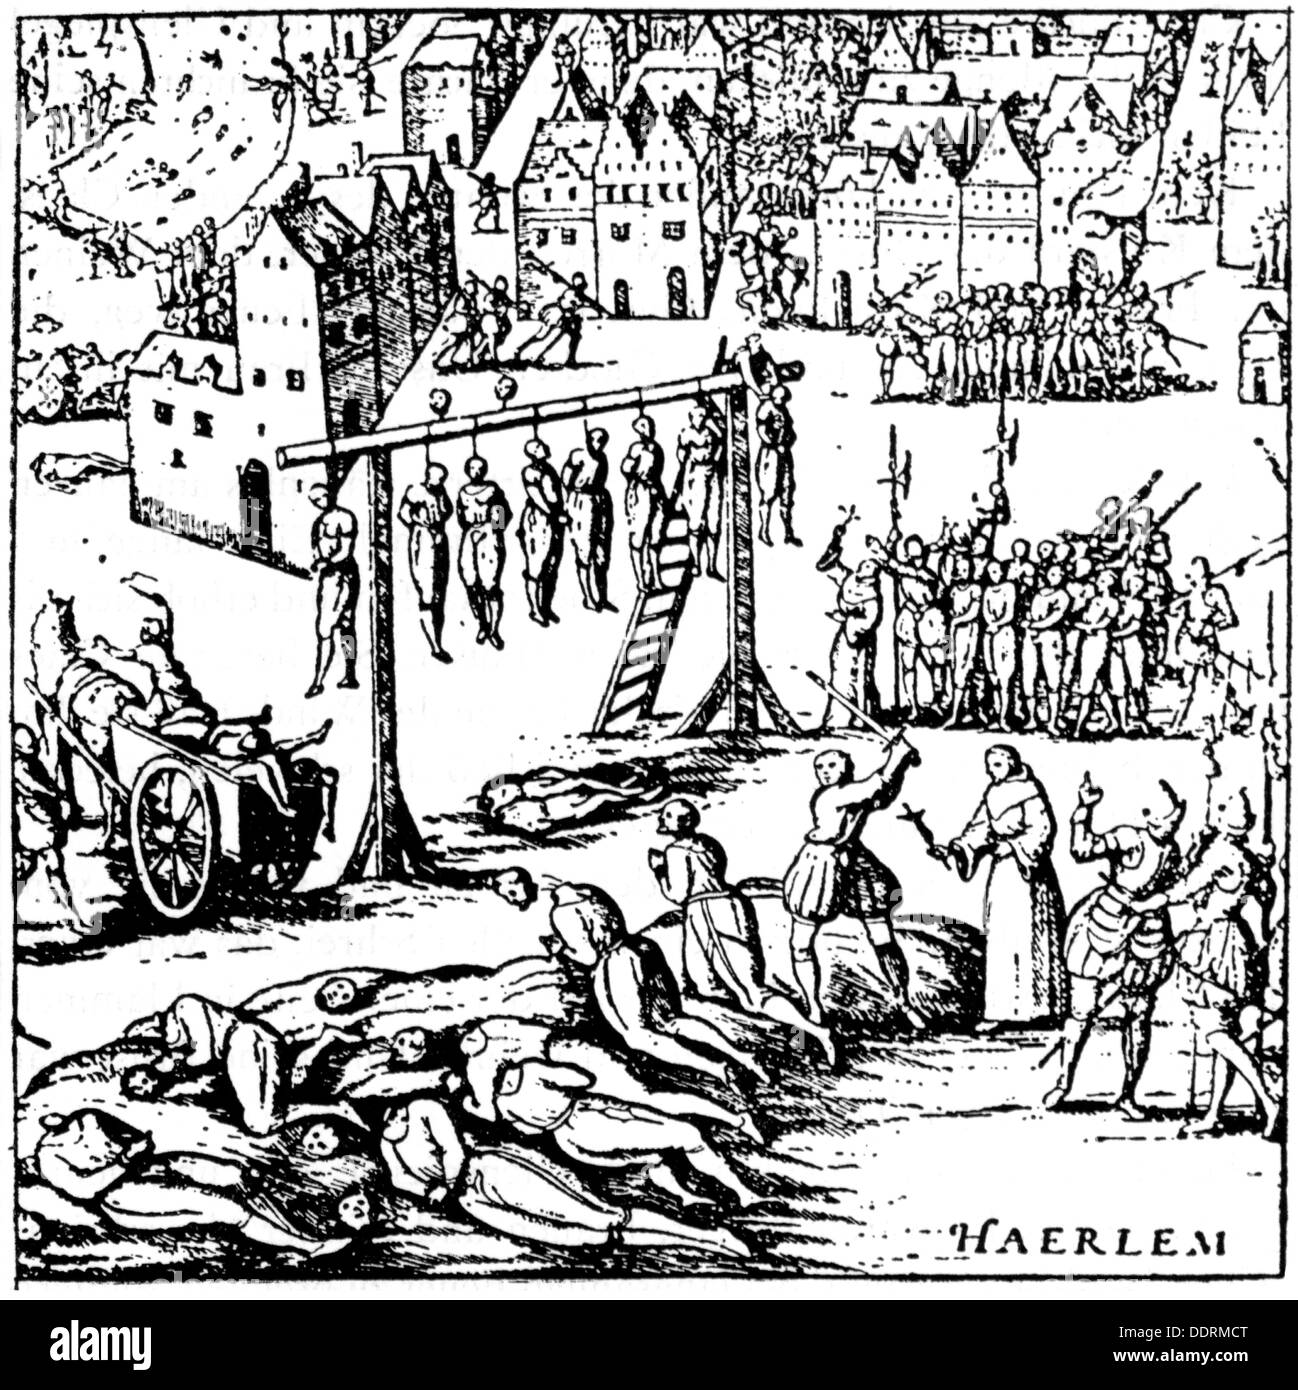 Erotic executions by the spanish garrote